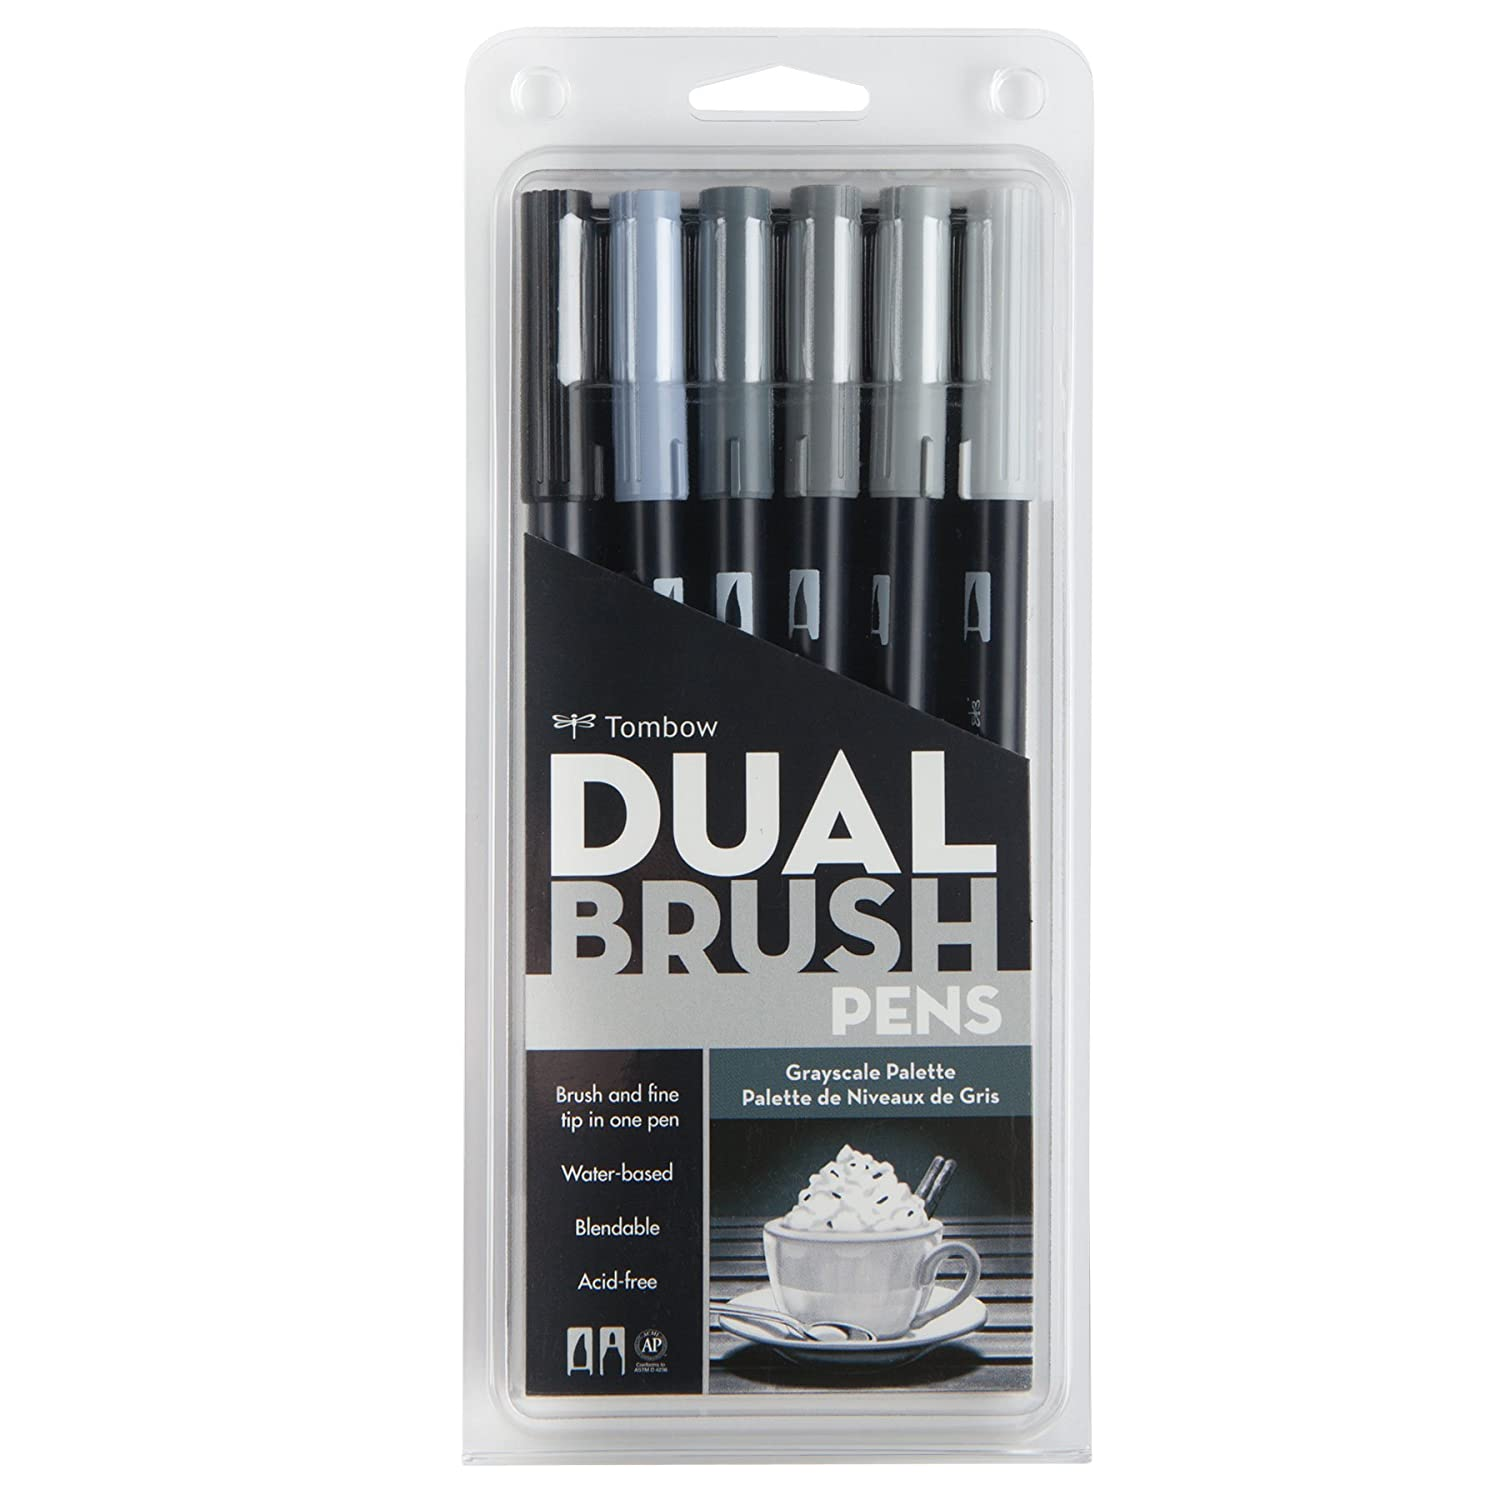 Tombow Dual Brush Pen Art Markers, Grayscale, 6-Pack | eBay